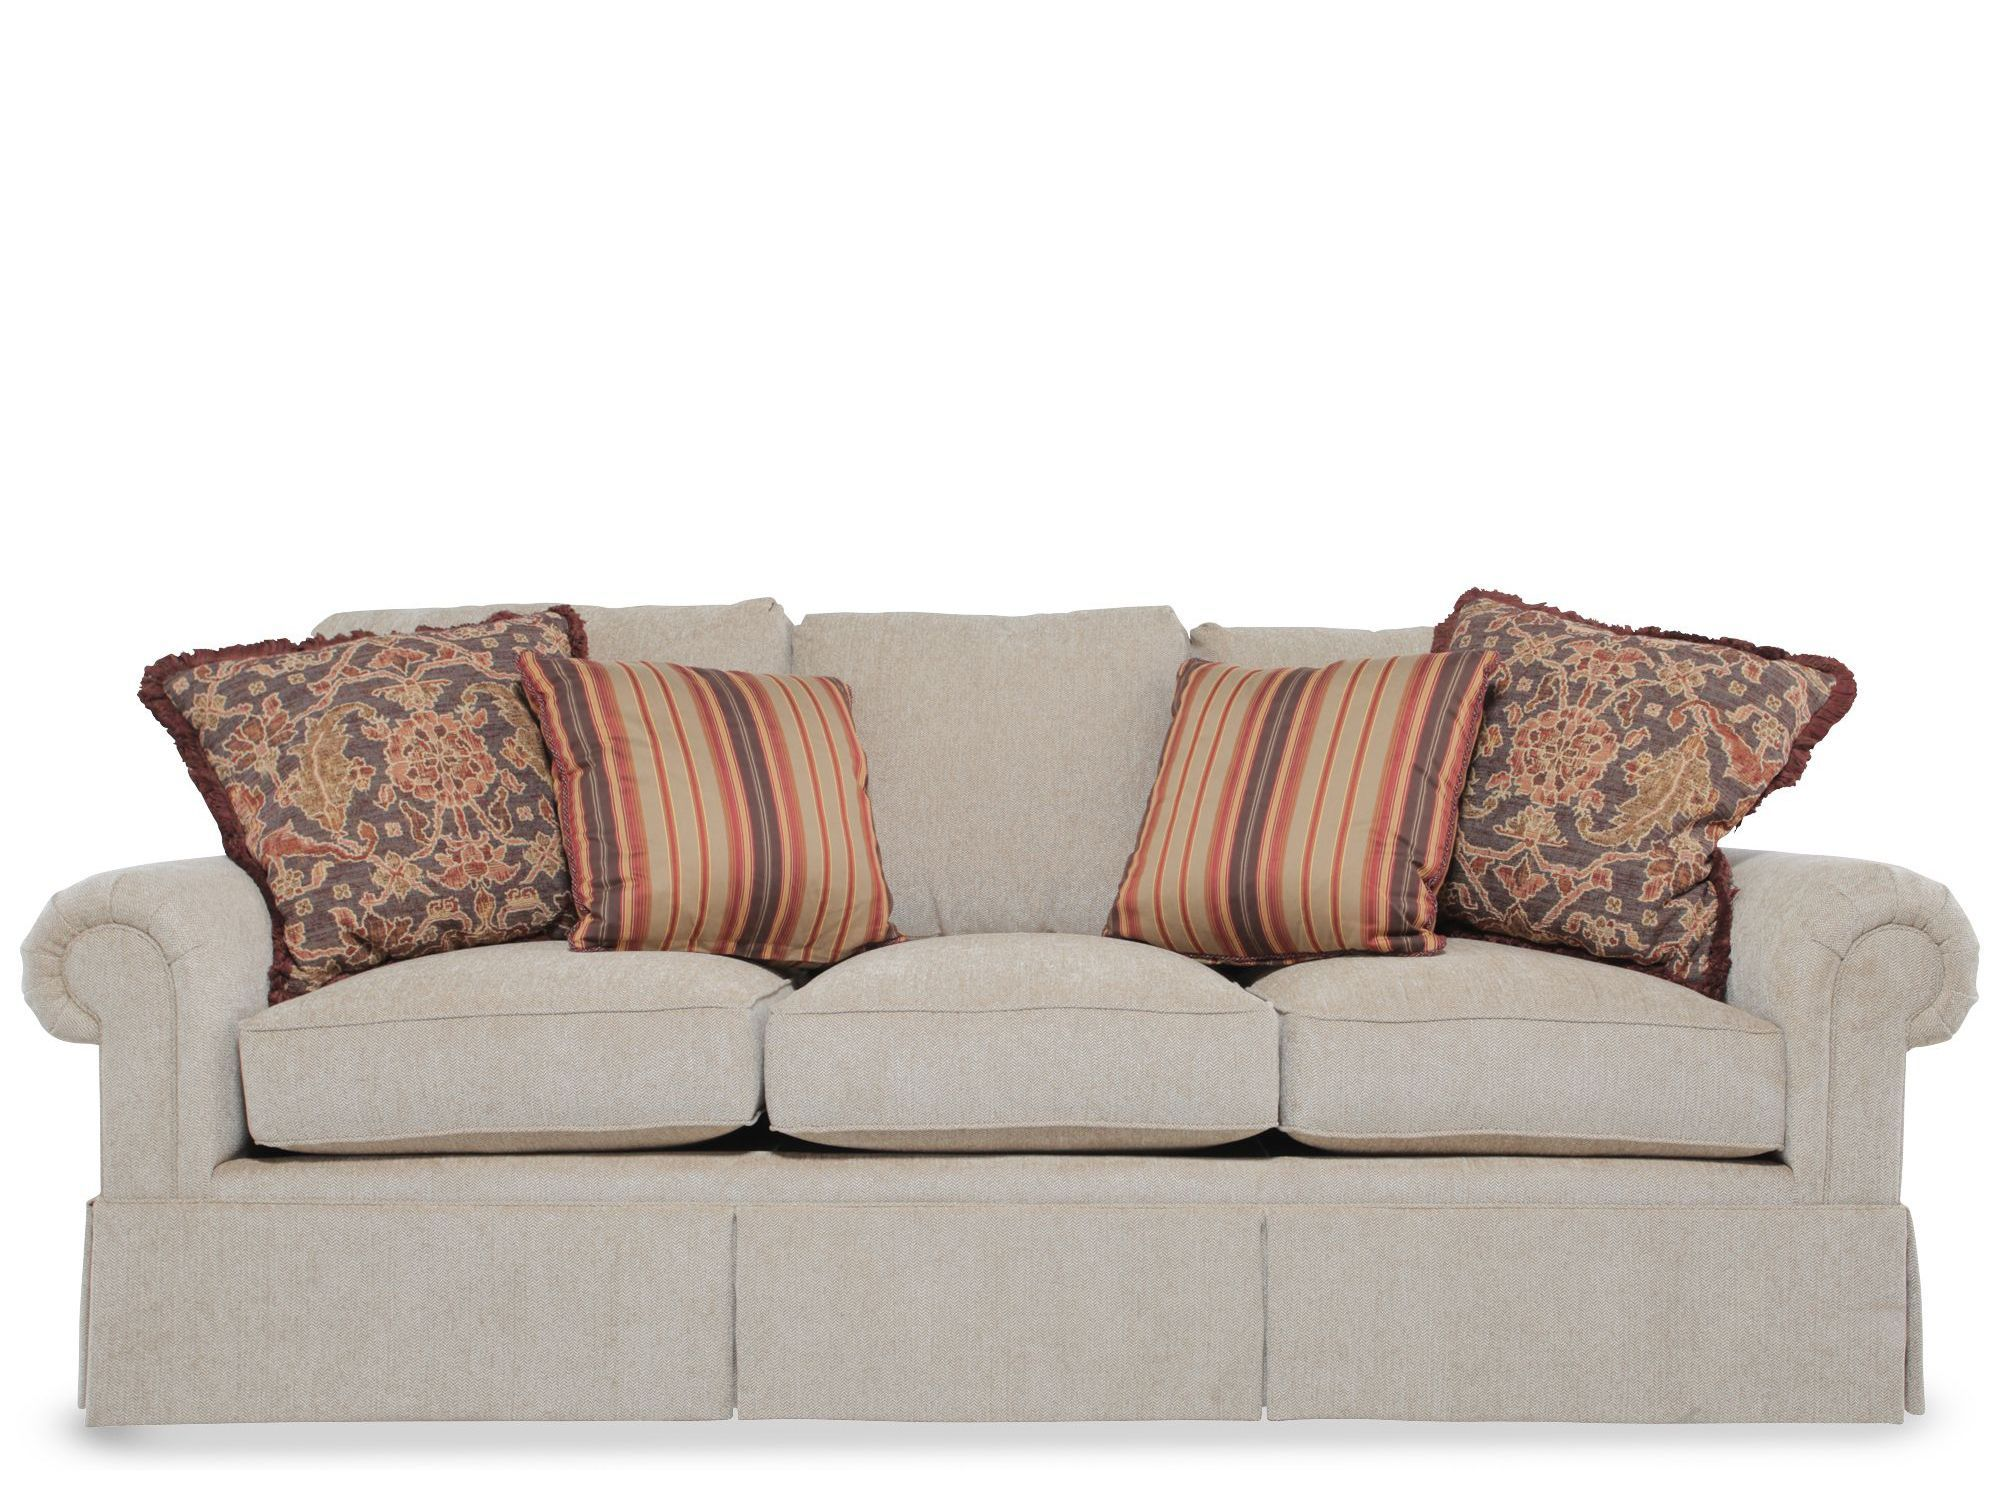 henredon sofa fabrics furniture covers for sectional sofas a traditional masterpiece from this fireside is dressed in soft light